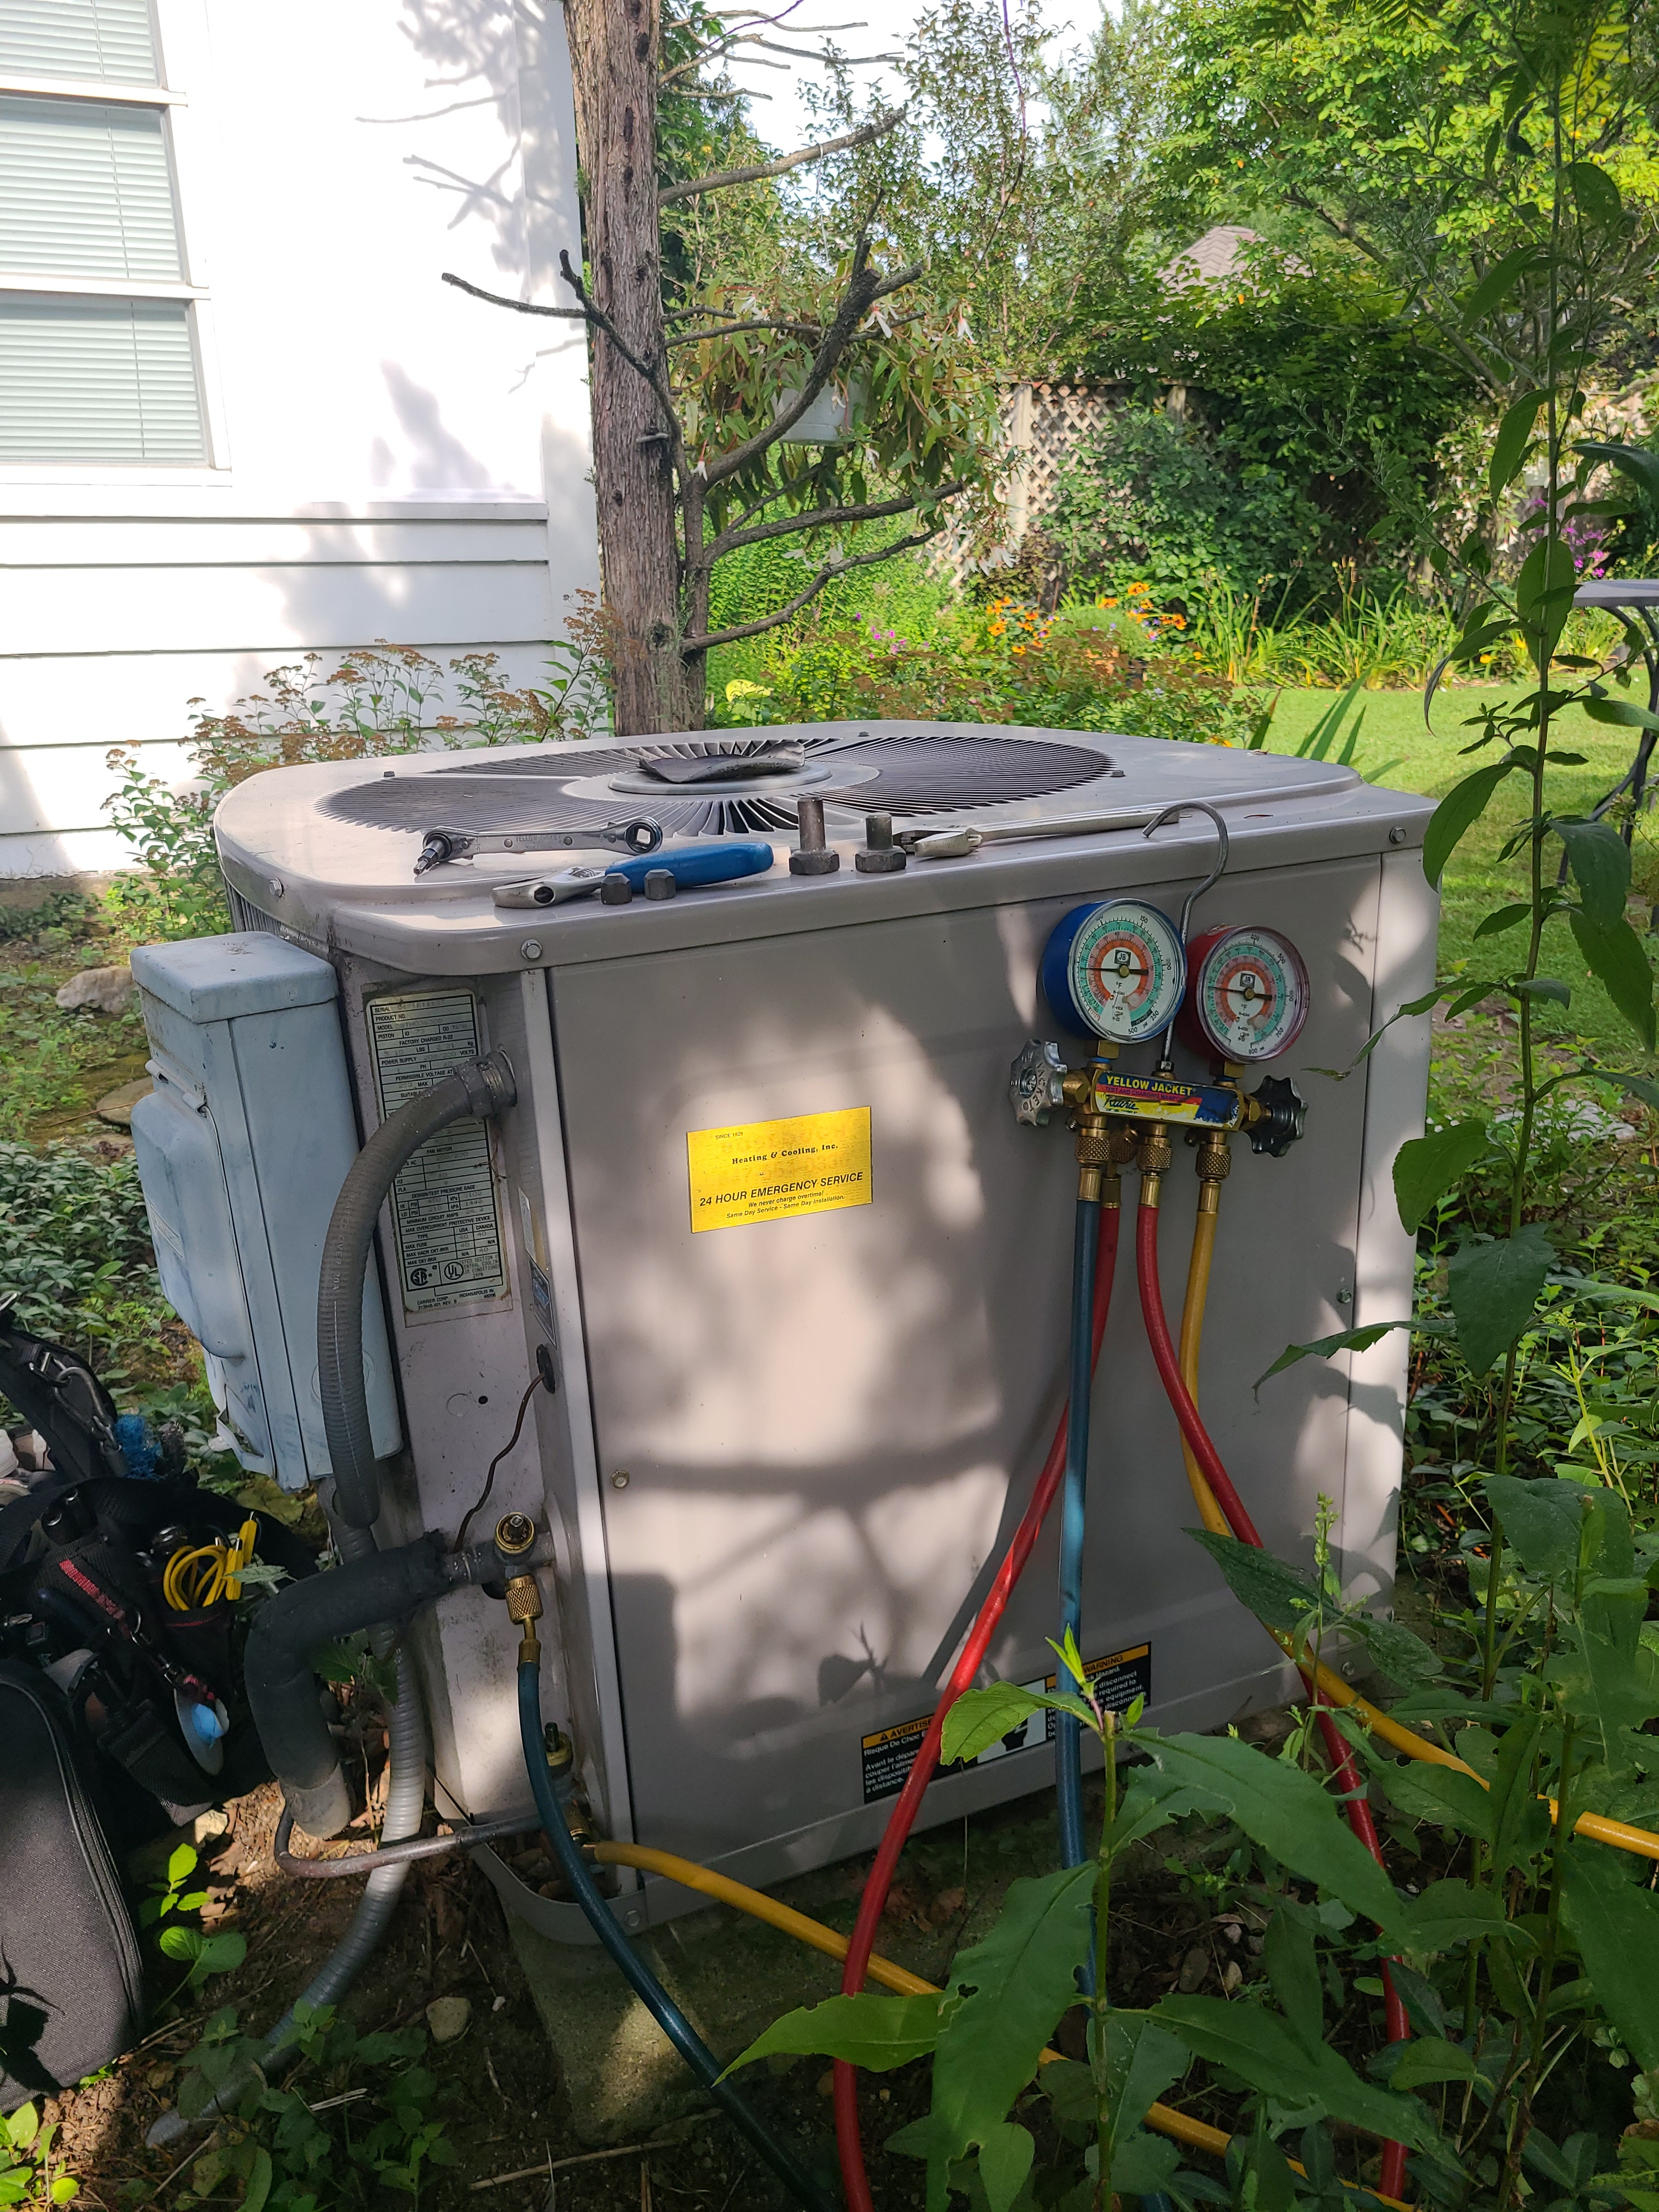 Carrier air conditioning no cooling operation diagnosed and repaired.